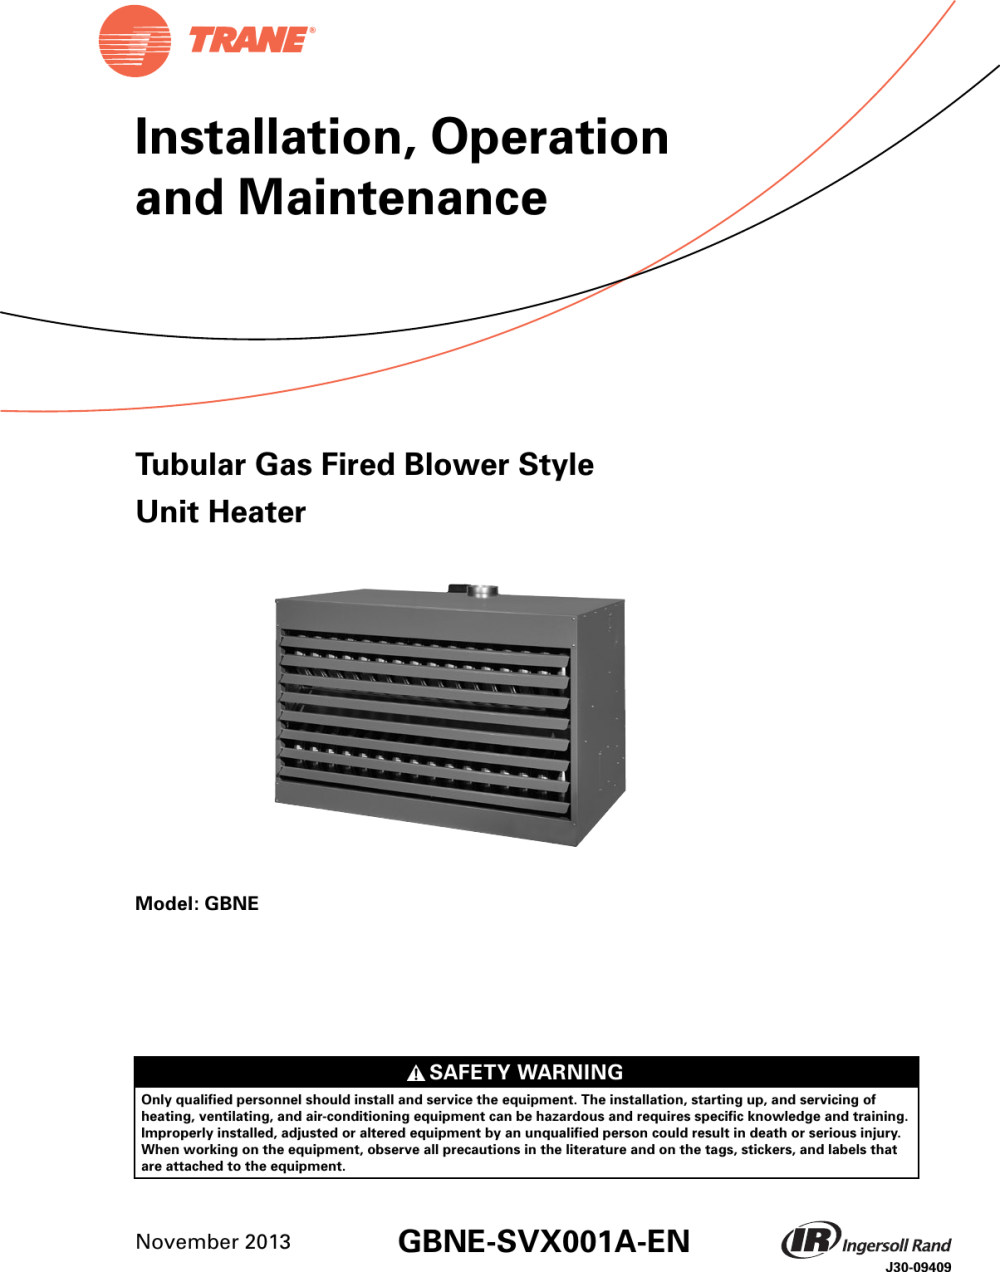 medium resolution of trane gas unit heaters installation and maintenance manual gbne svx001a en 11 05 2013 tubular fired blower style heater installation operation